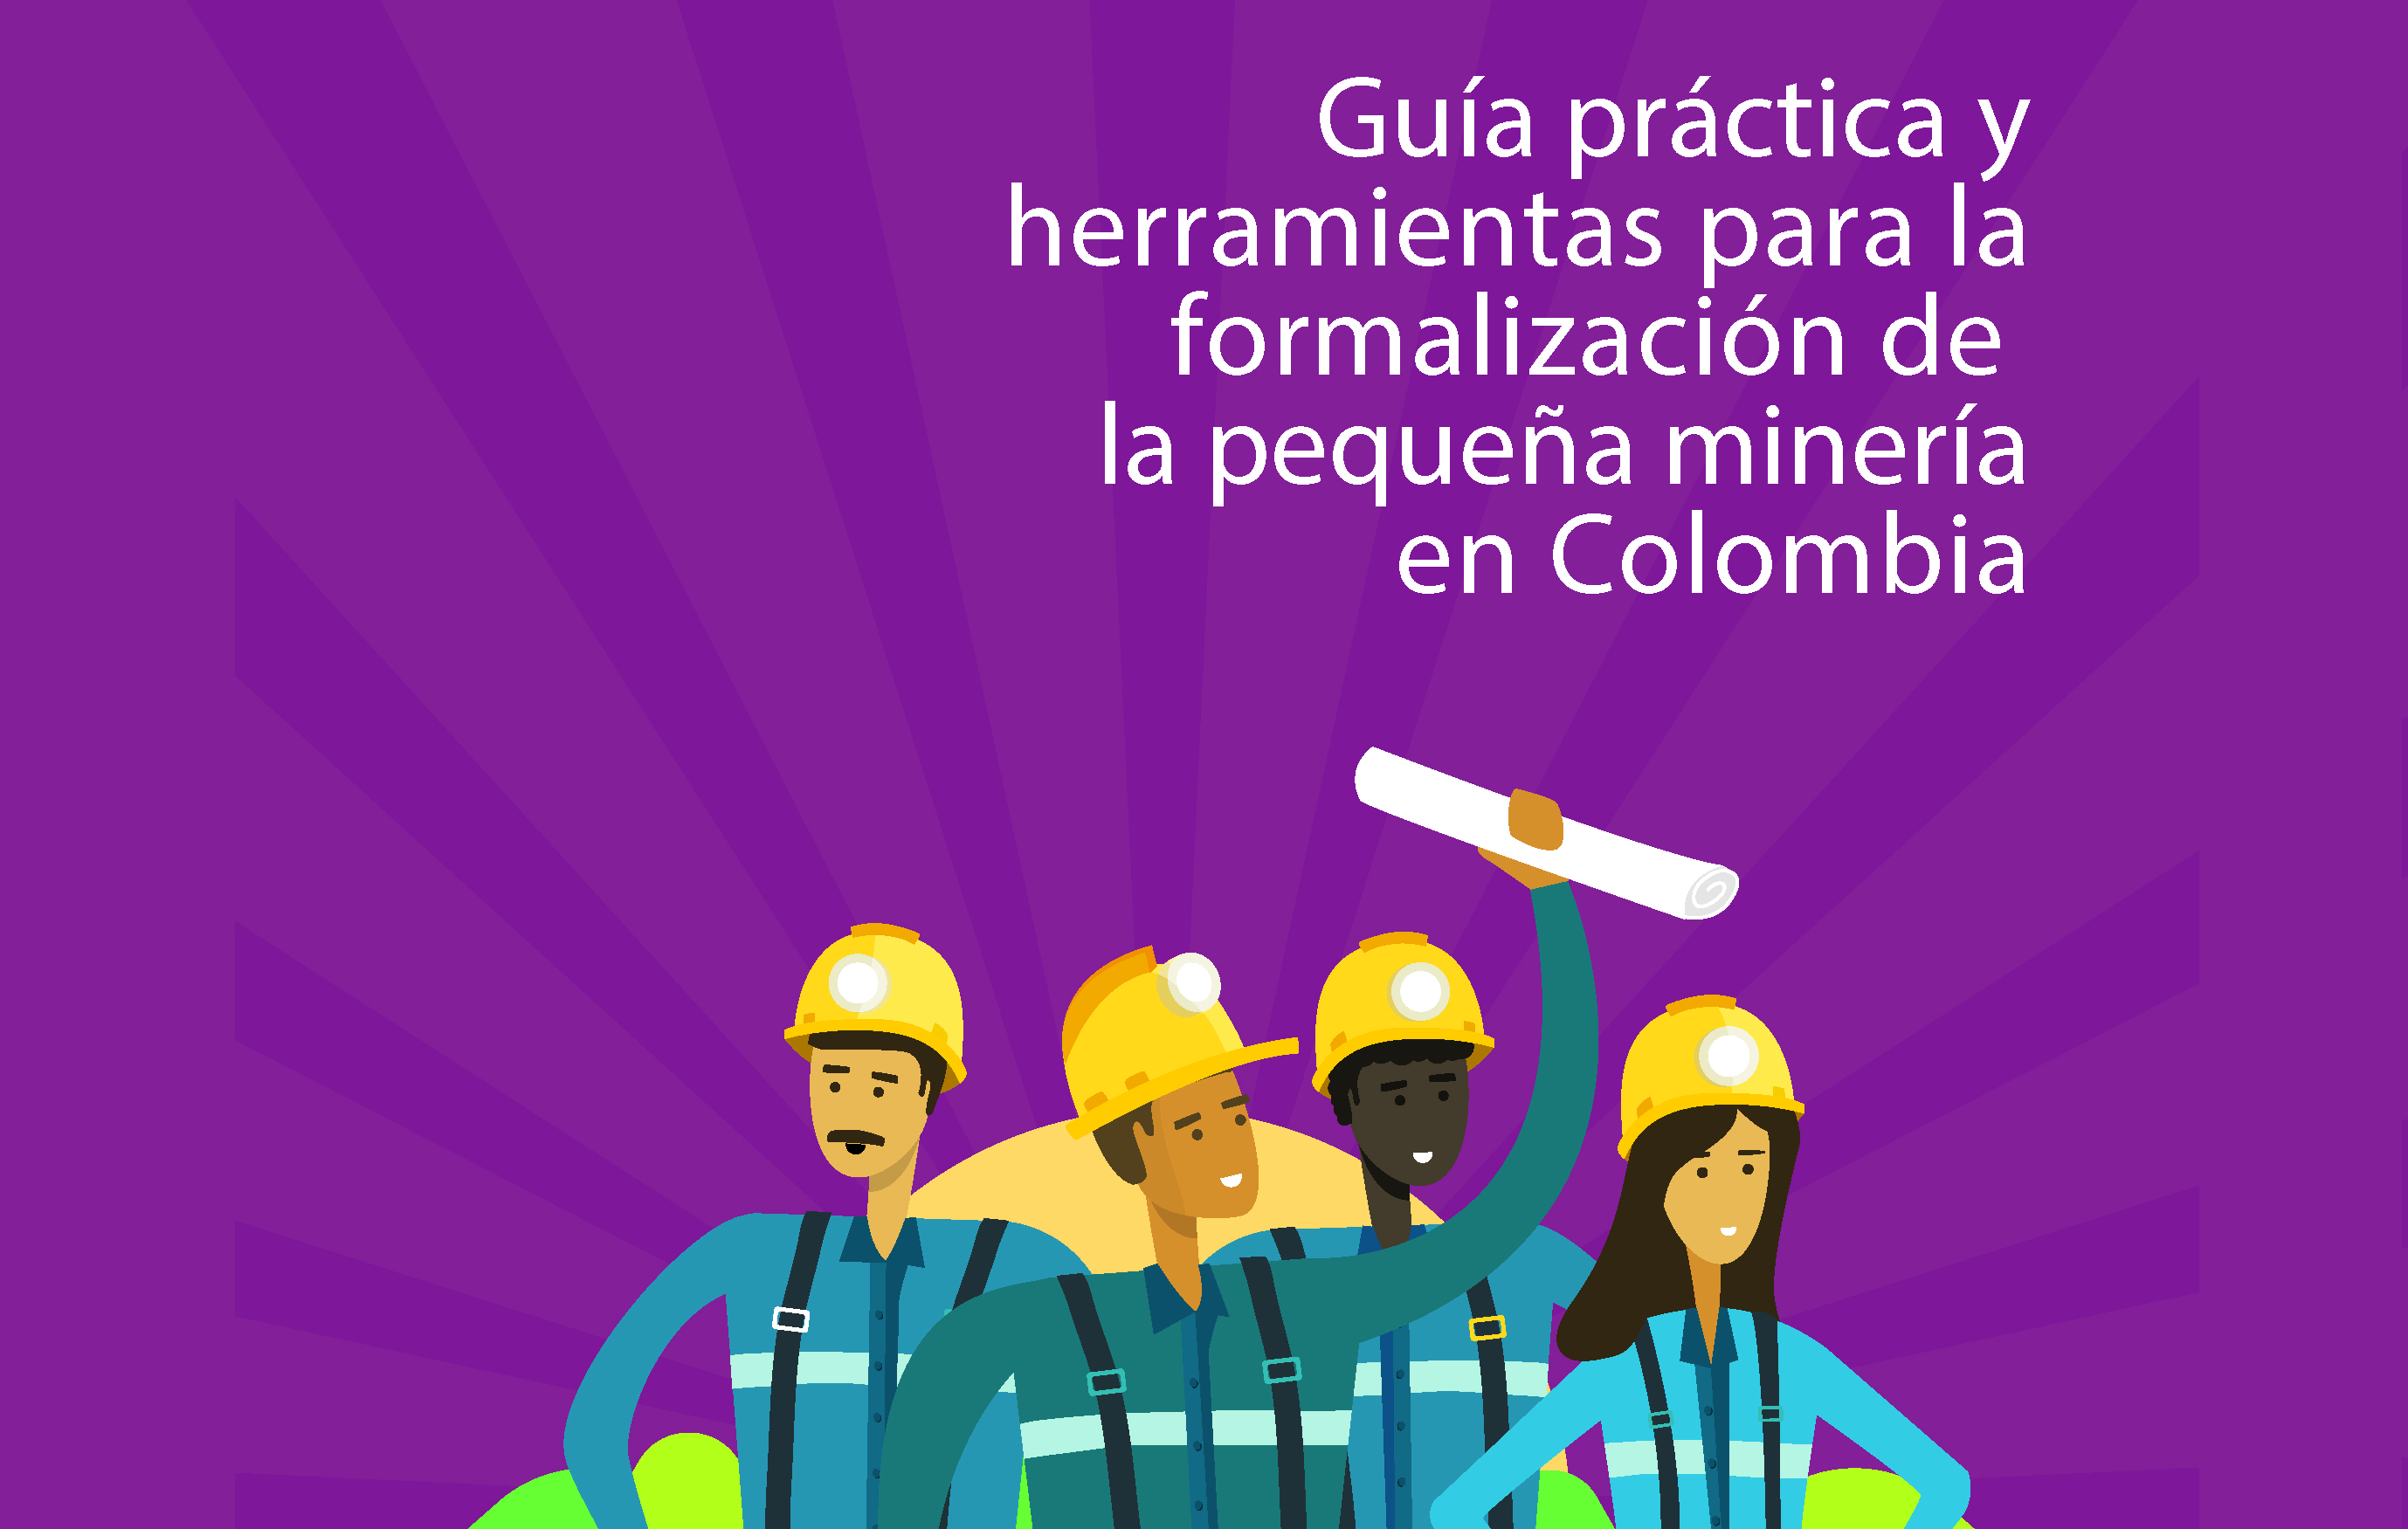 The Practical Guide for the formalization of small scale mining in Colombia has arrived!